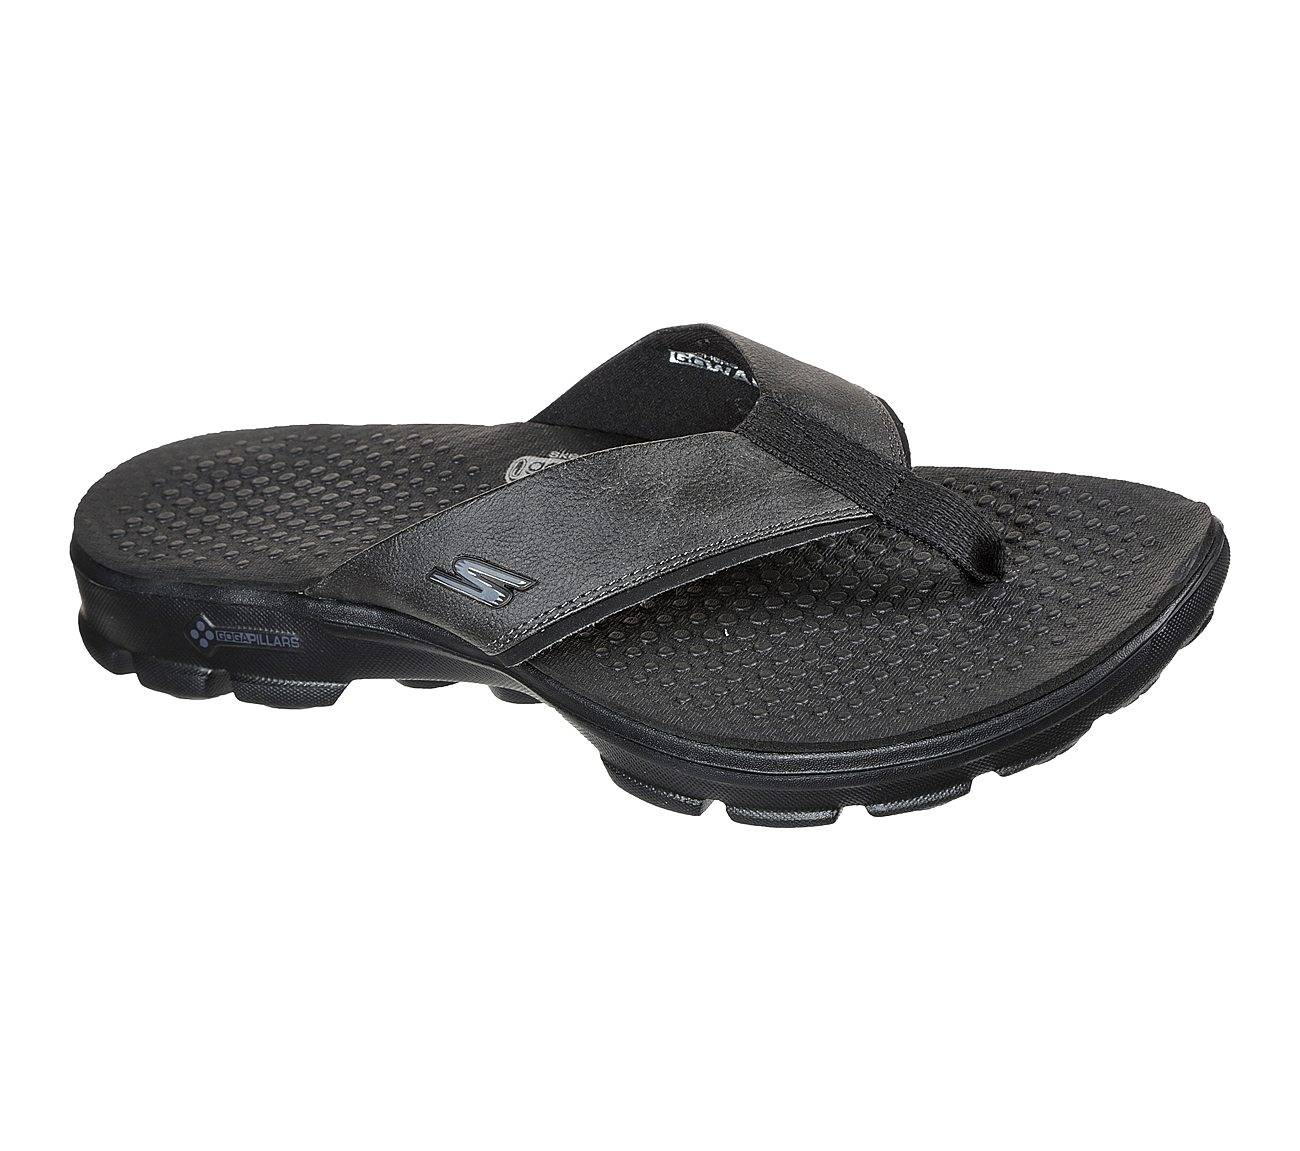 Buy SKECHERS Skechers GOwalk 3 - Stag